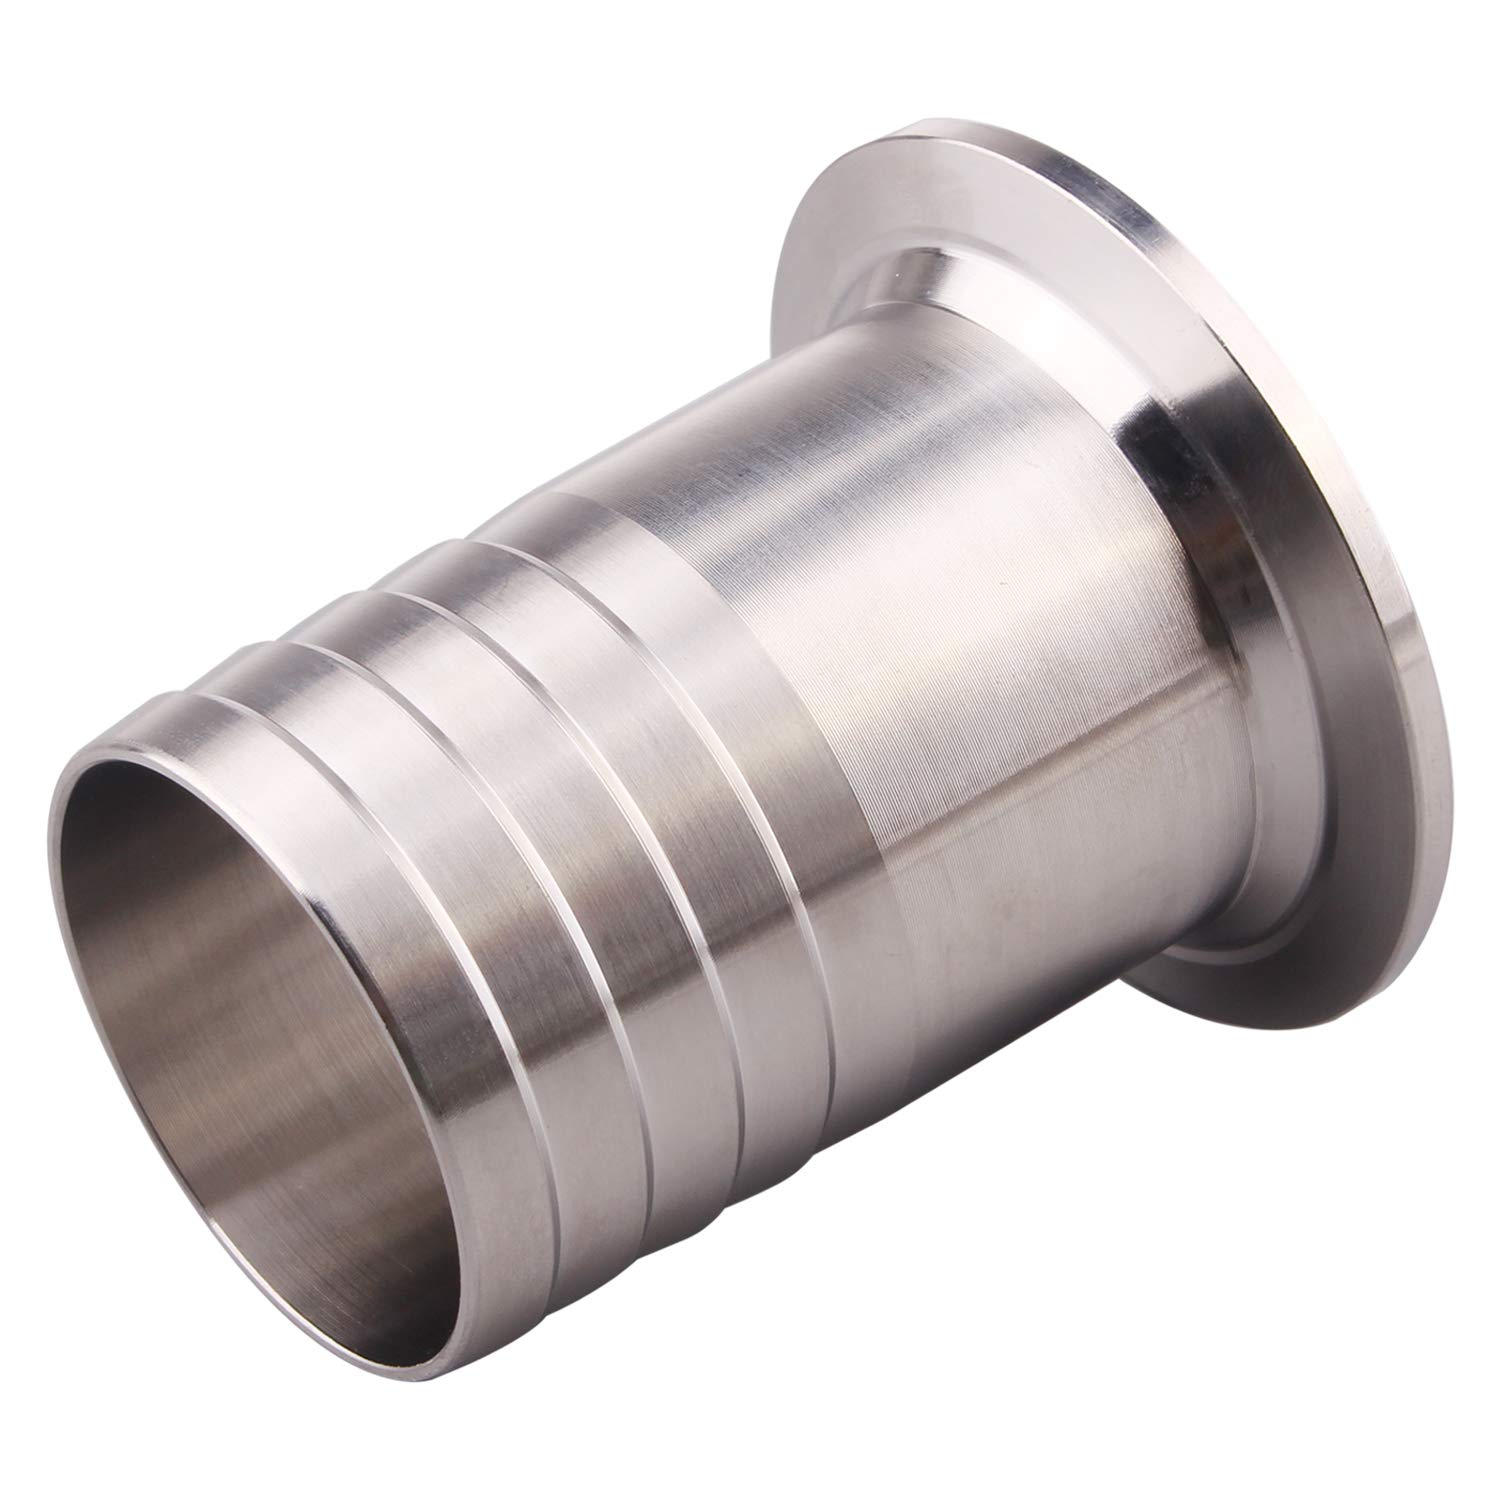 2 Tri Clamp to 1//2 Sanitary Rubber Hose Barb Pipe Fitting Stainless Steel SS304 1//2 Inch Hose Barb Adapter